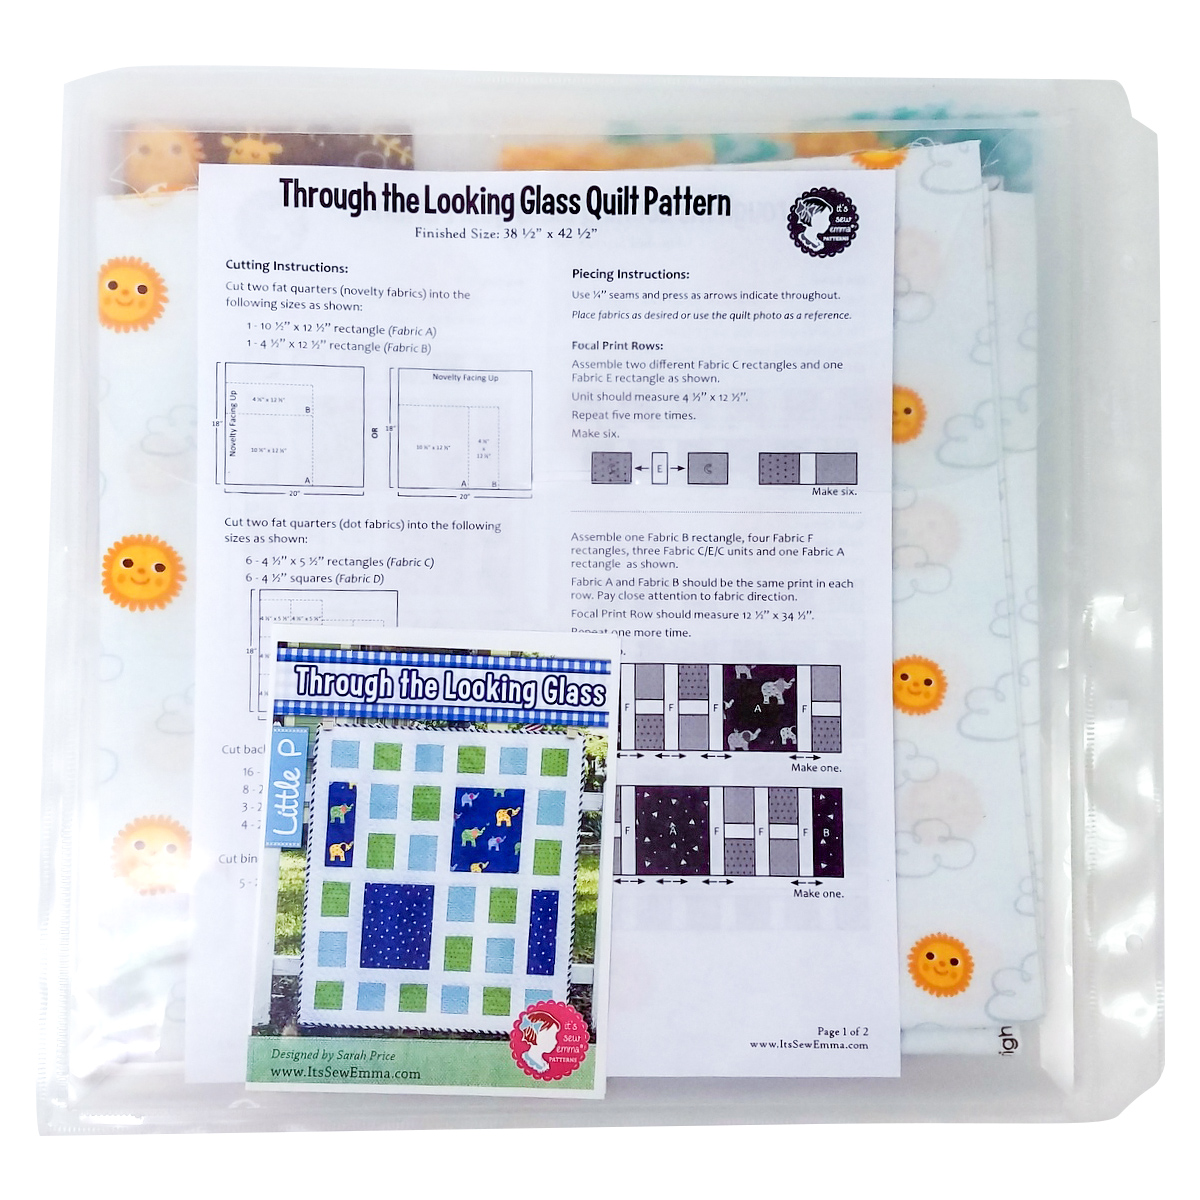 Quilting projects organizer - the Expanding Project Planner by Totally-Tiffany.